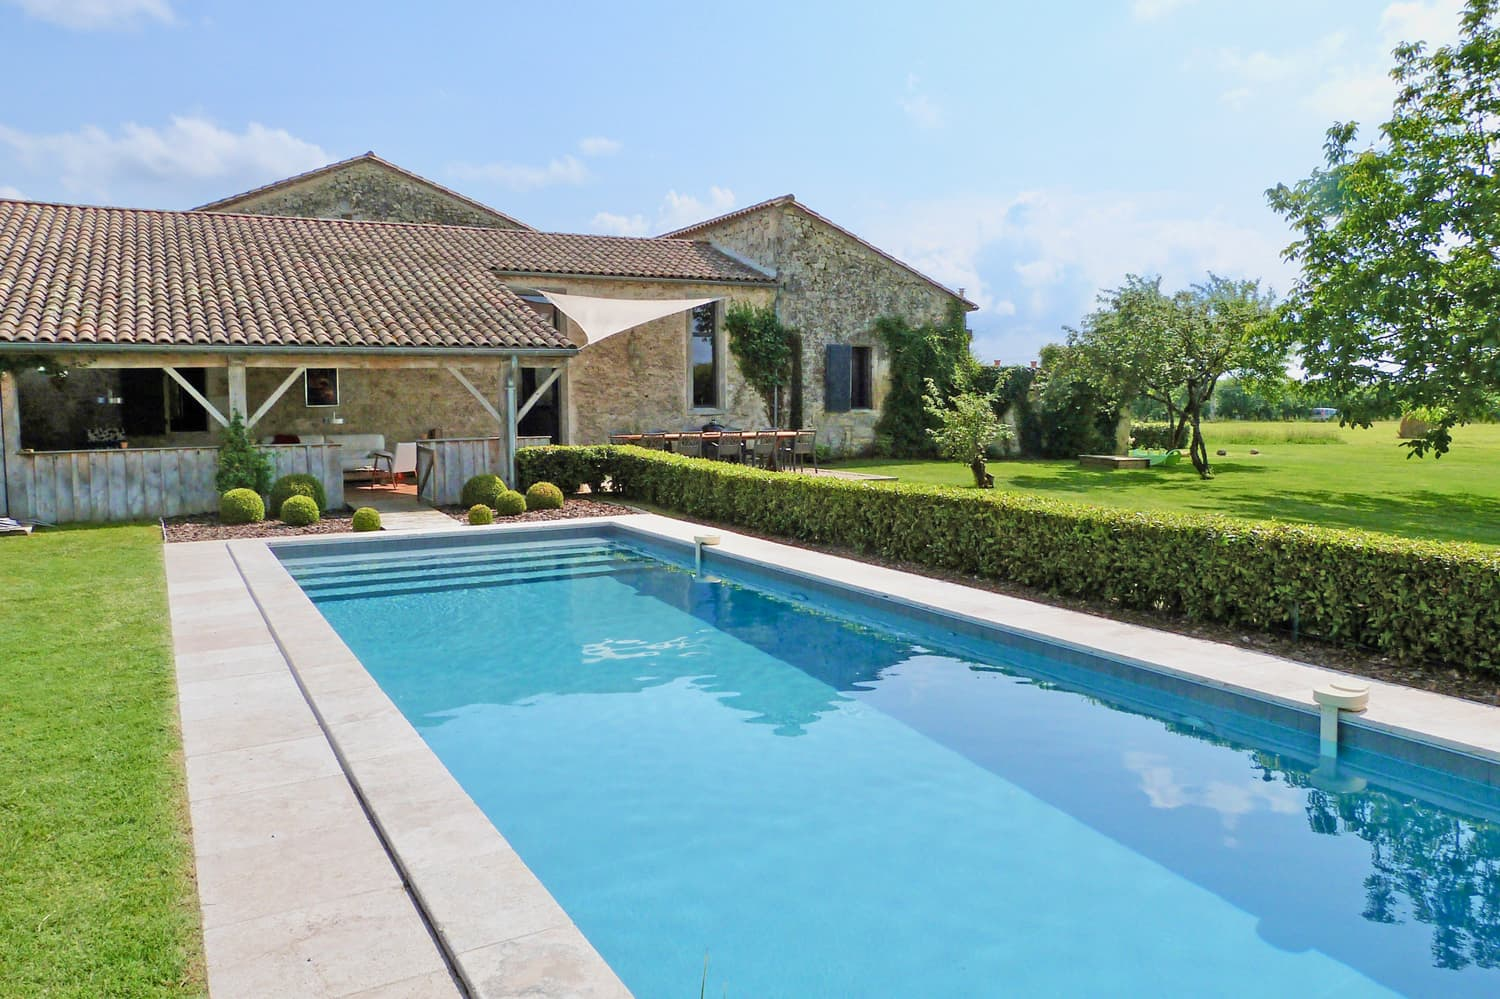 Phenomenal Self Catering Holiday Rentals With Private Pools In France Interior Design Ideas Gentotryabchikinfo